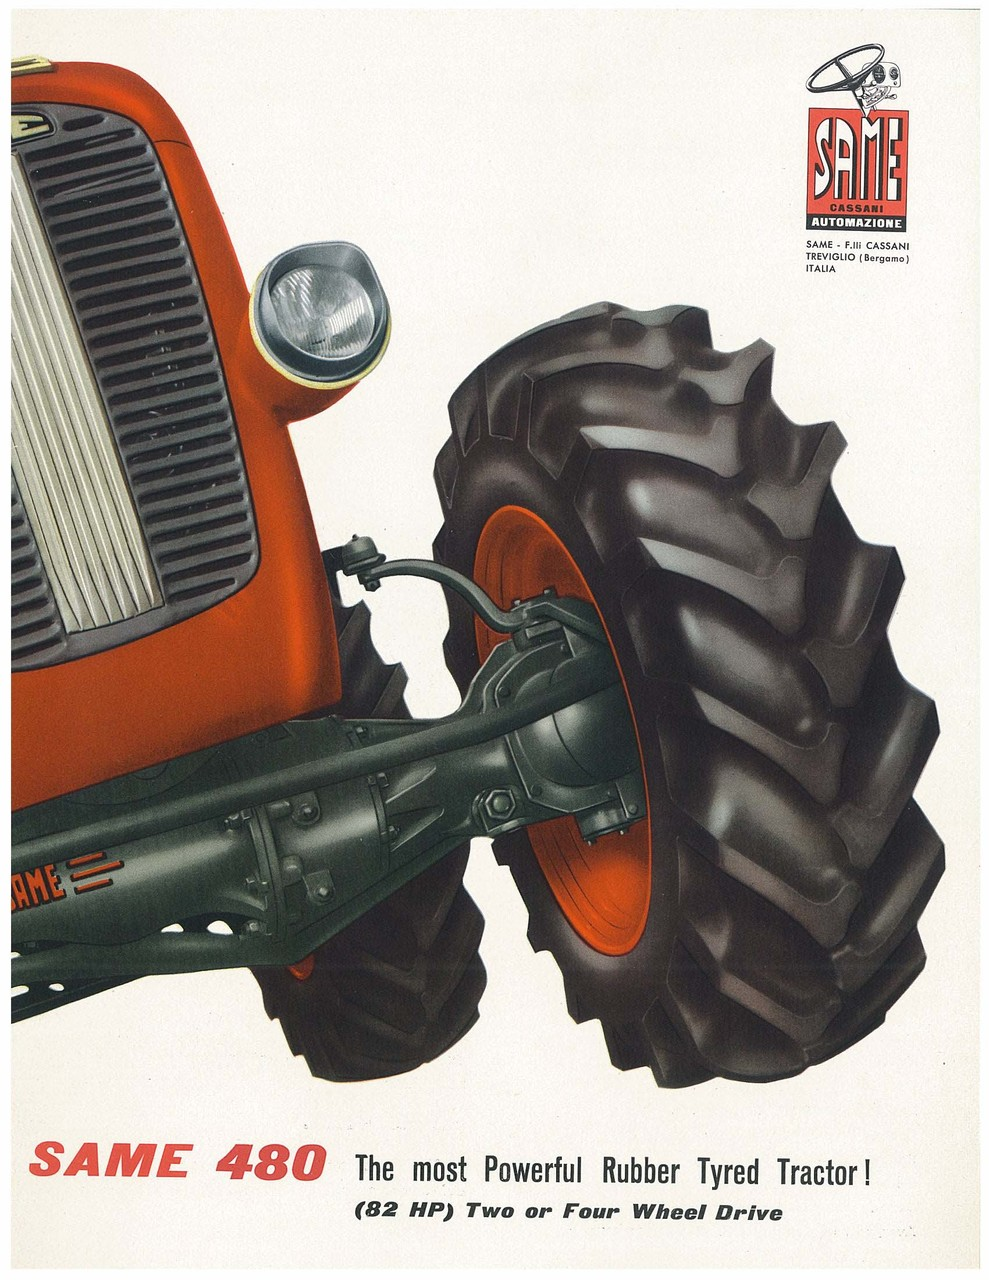 SAME 480 Thr most Powerful Rubber Tyred Tractor!